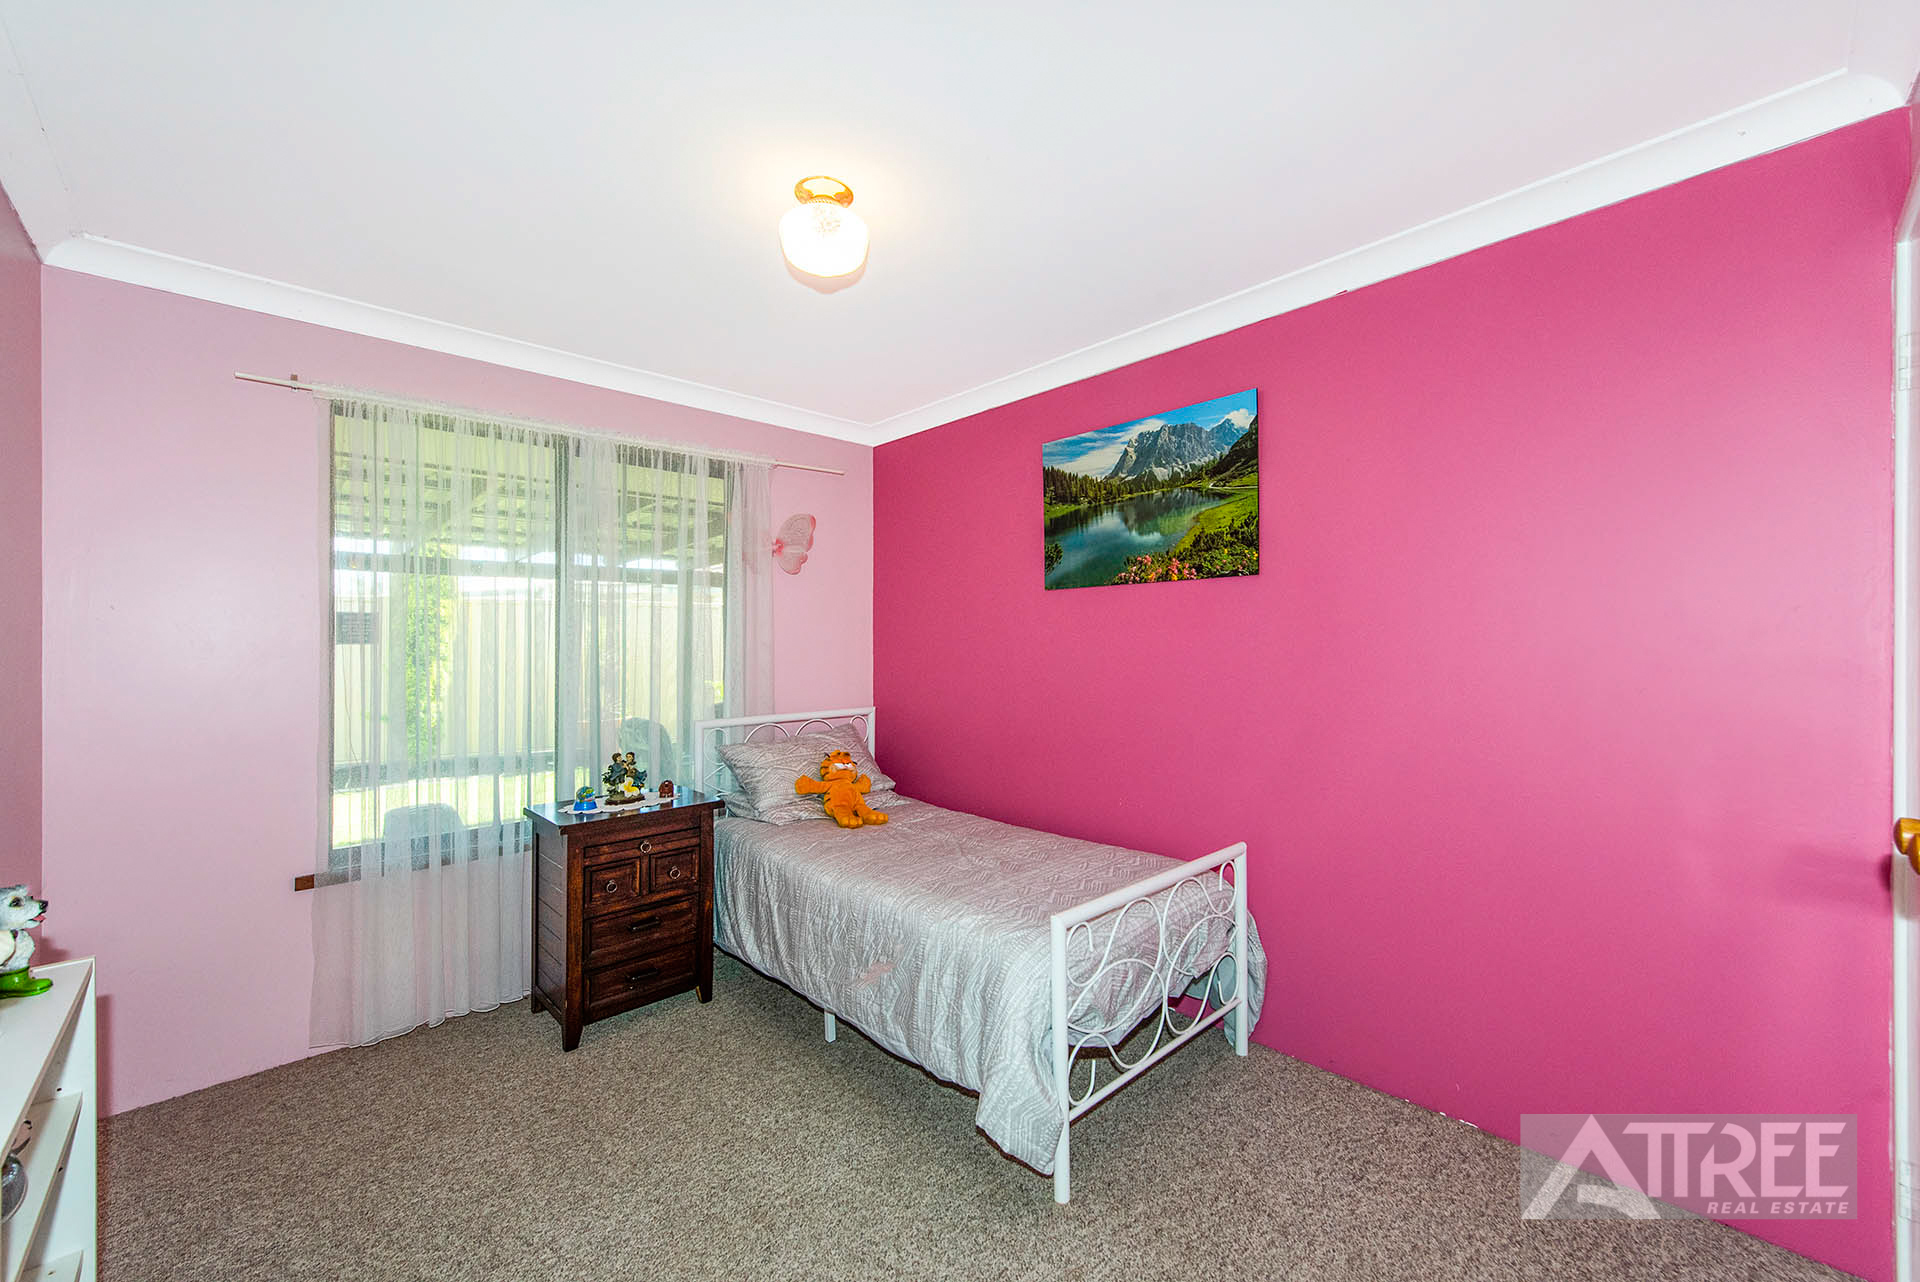 Property for sale in THORNLIE, 10 Voyager Drive : Attree Real Estate